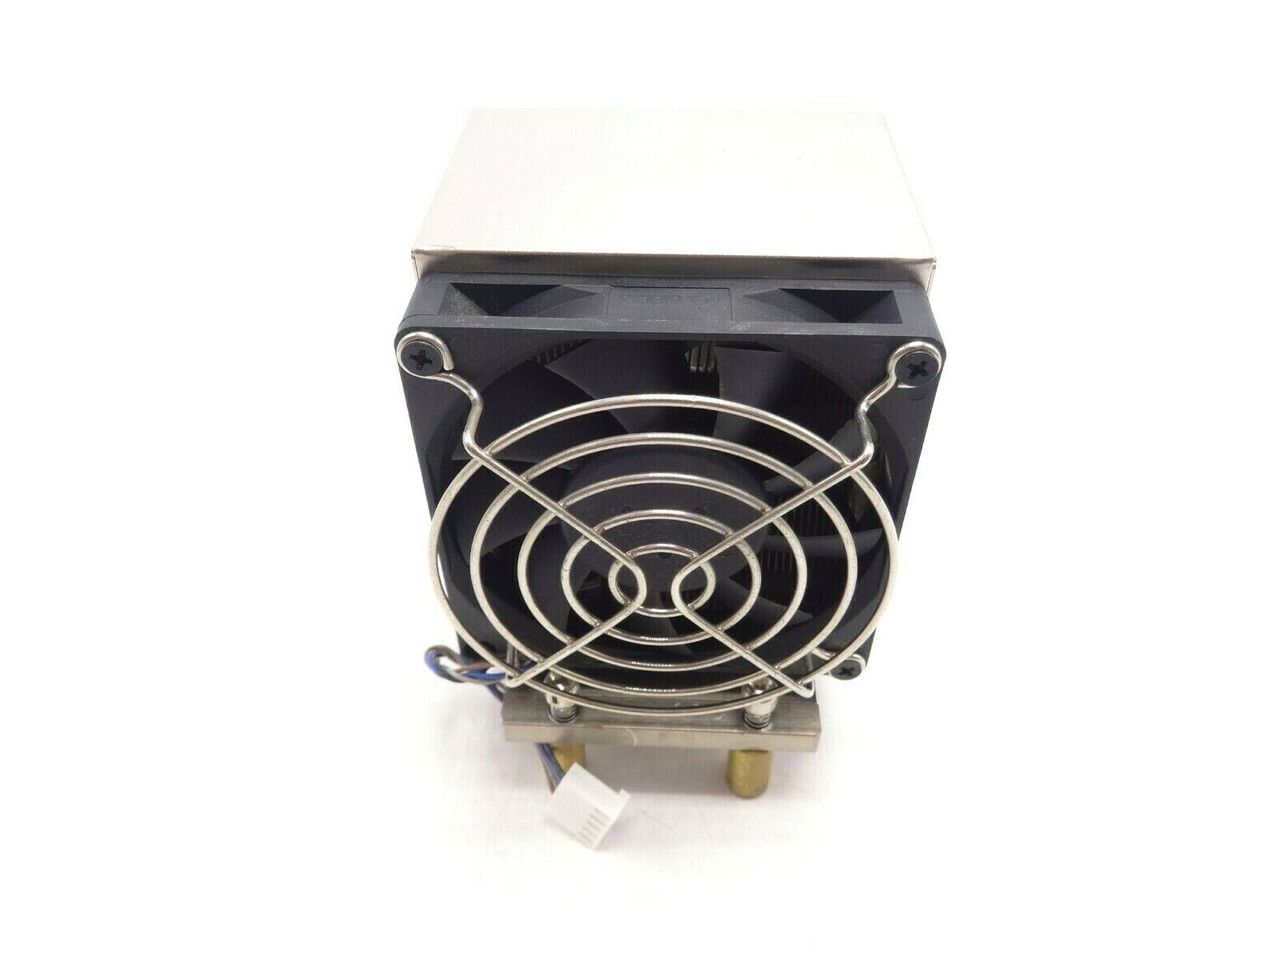 HP 446358-001 XW6600 XW8600 Workstation CPU Fan Heatsink